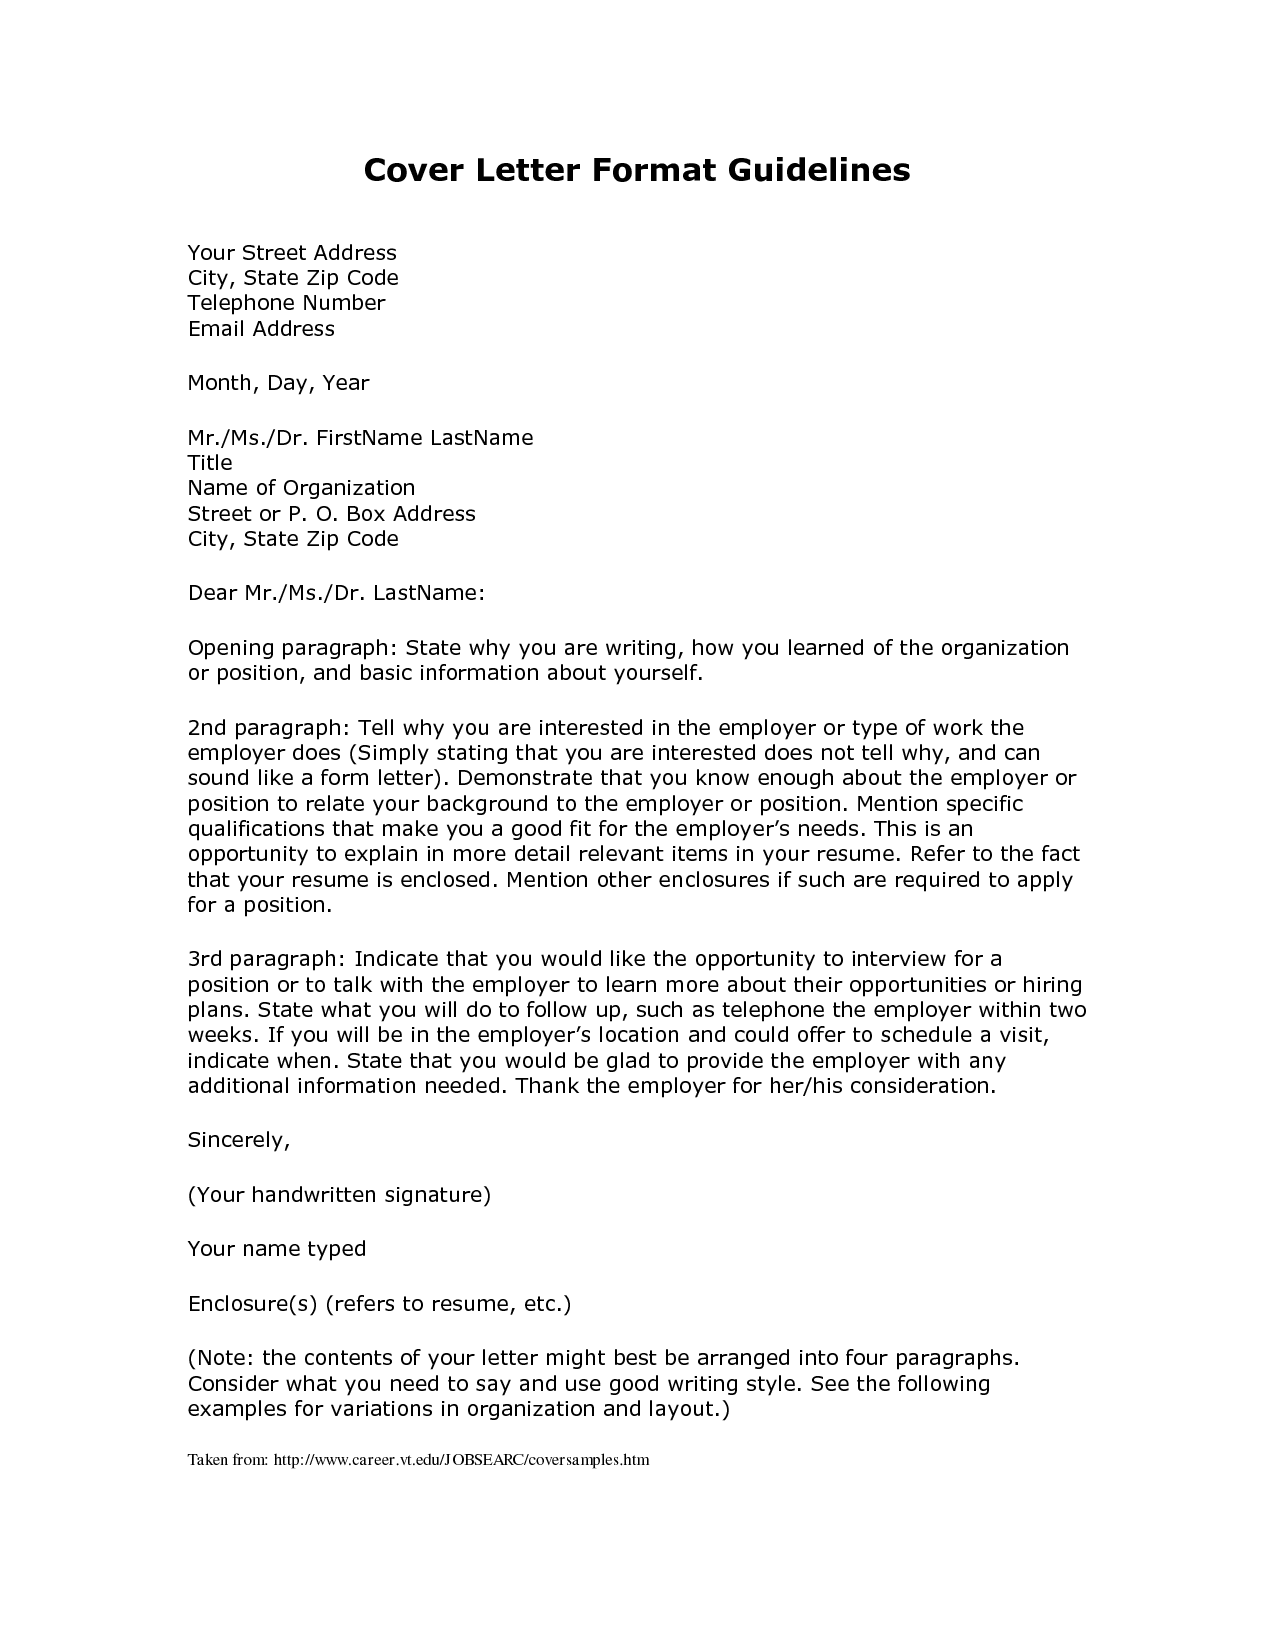 Cover letter examples cover letter samples httpwww application cover letter madrichimfo Gallery